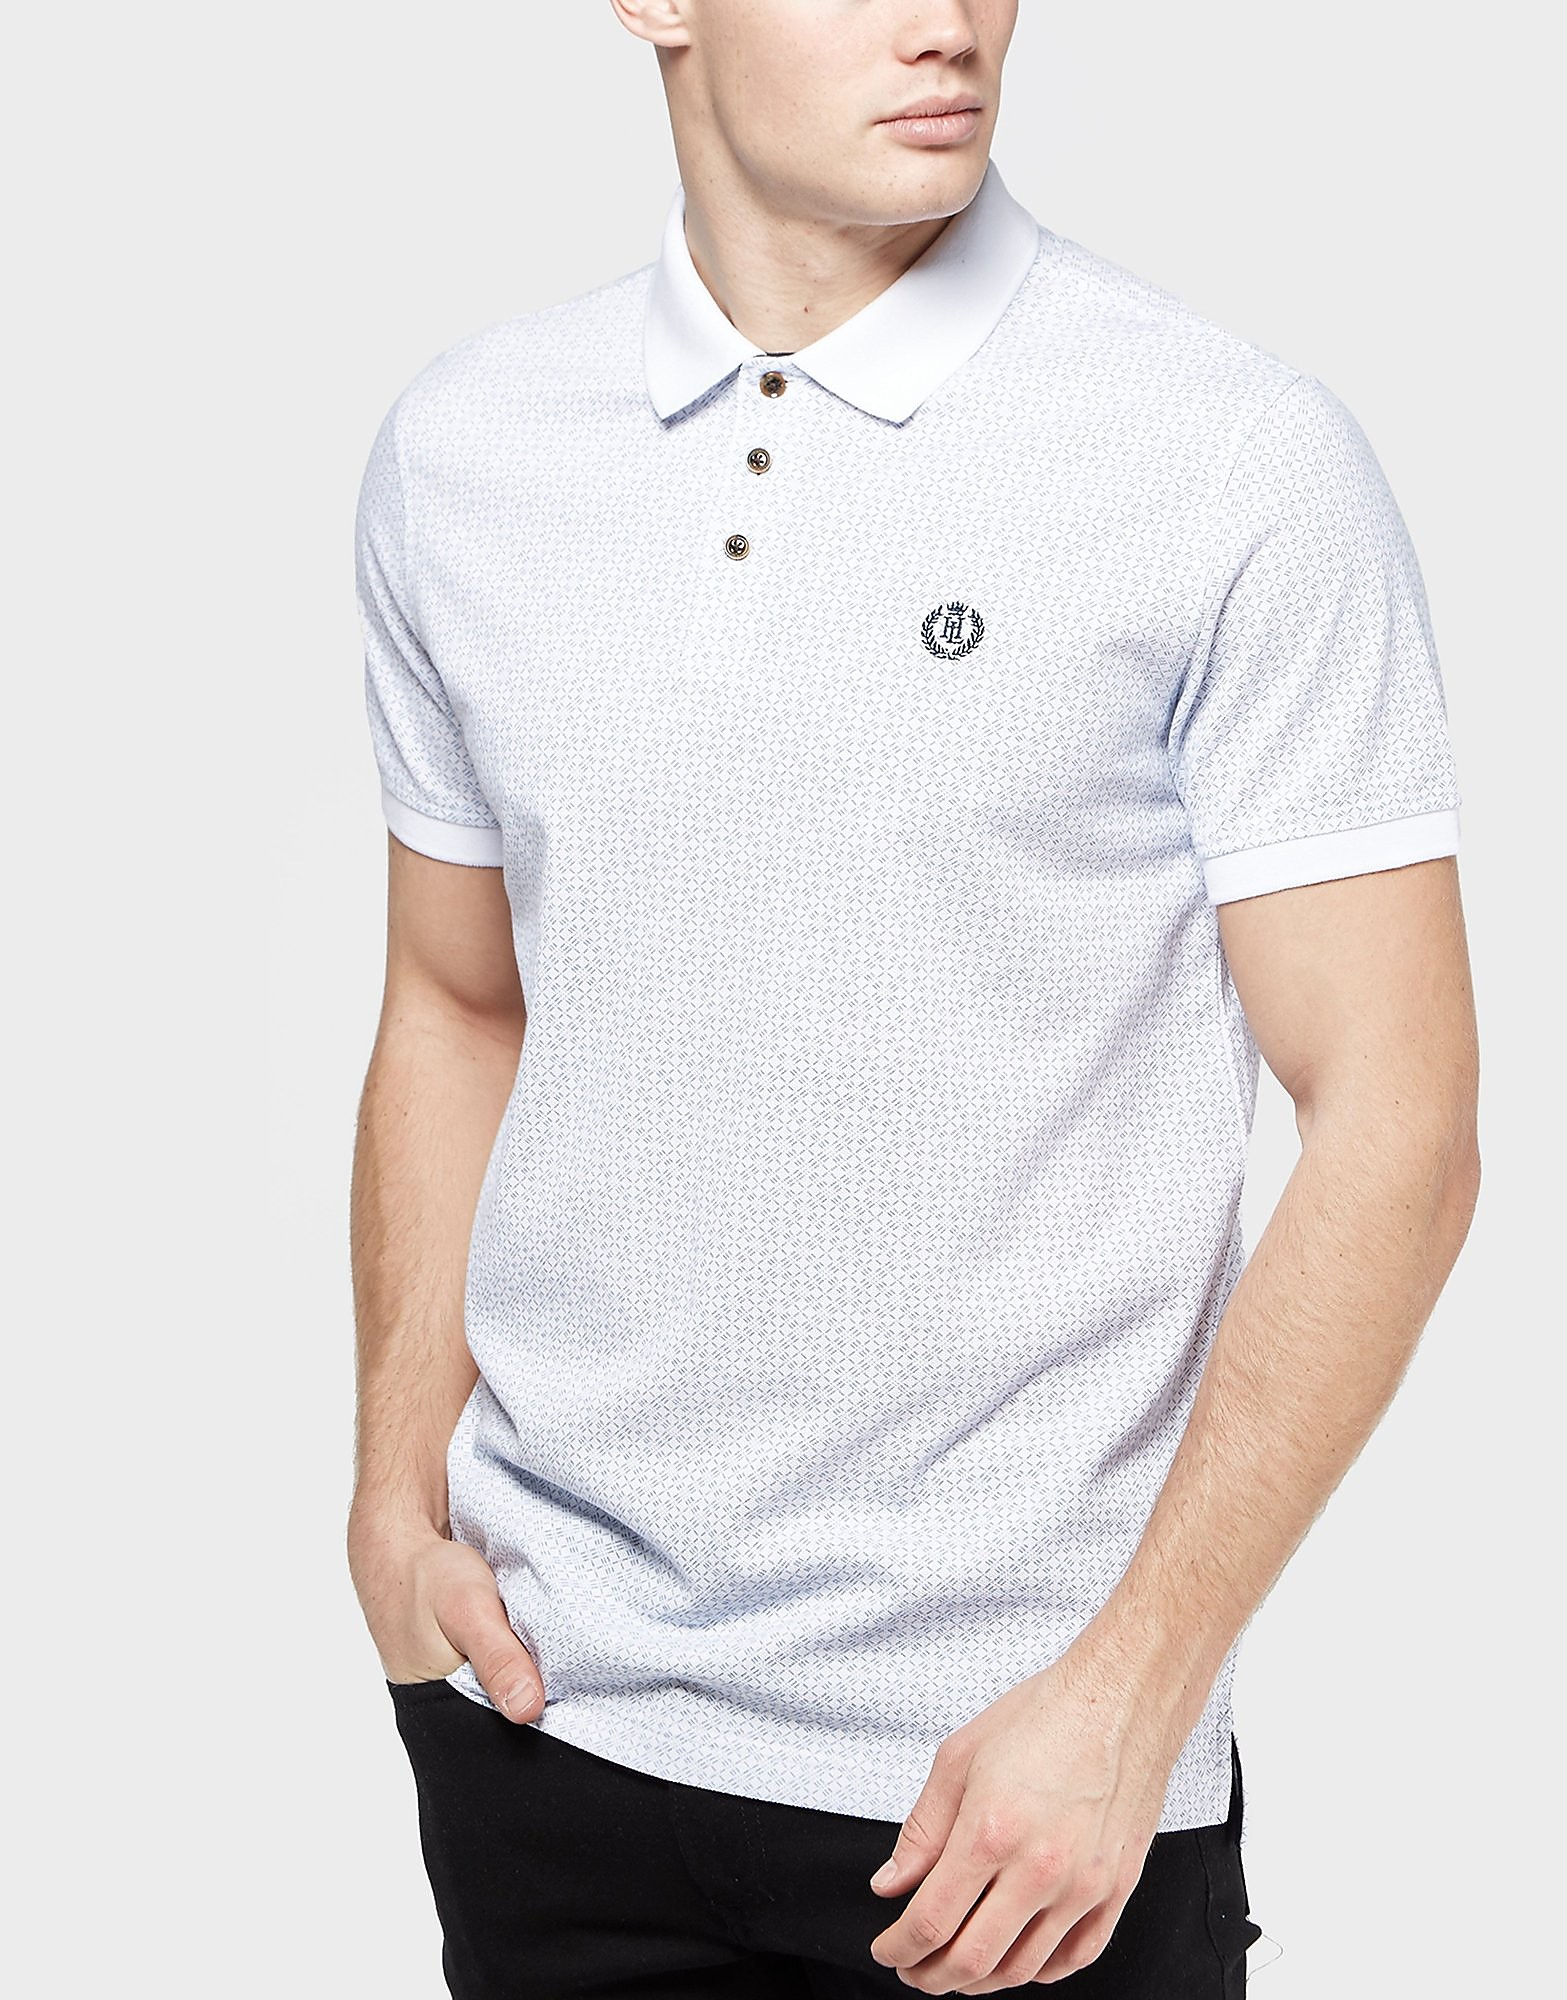 Henri Lloyd Flixton Polo Shirt  White White